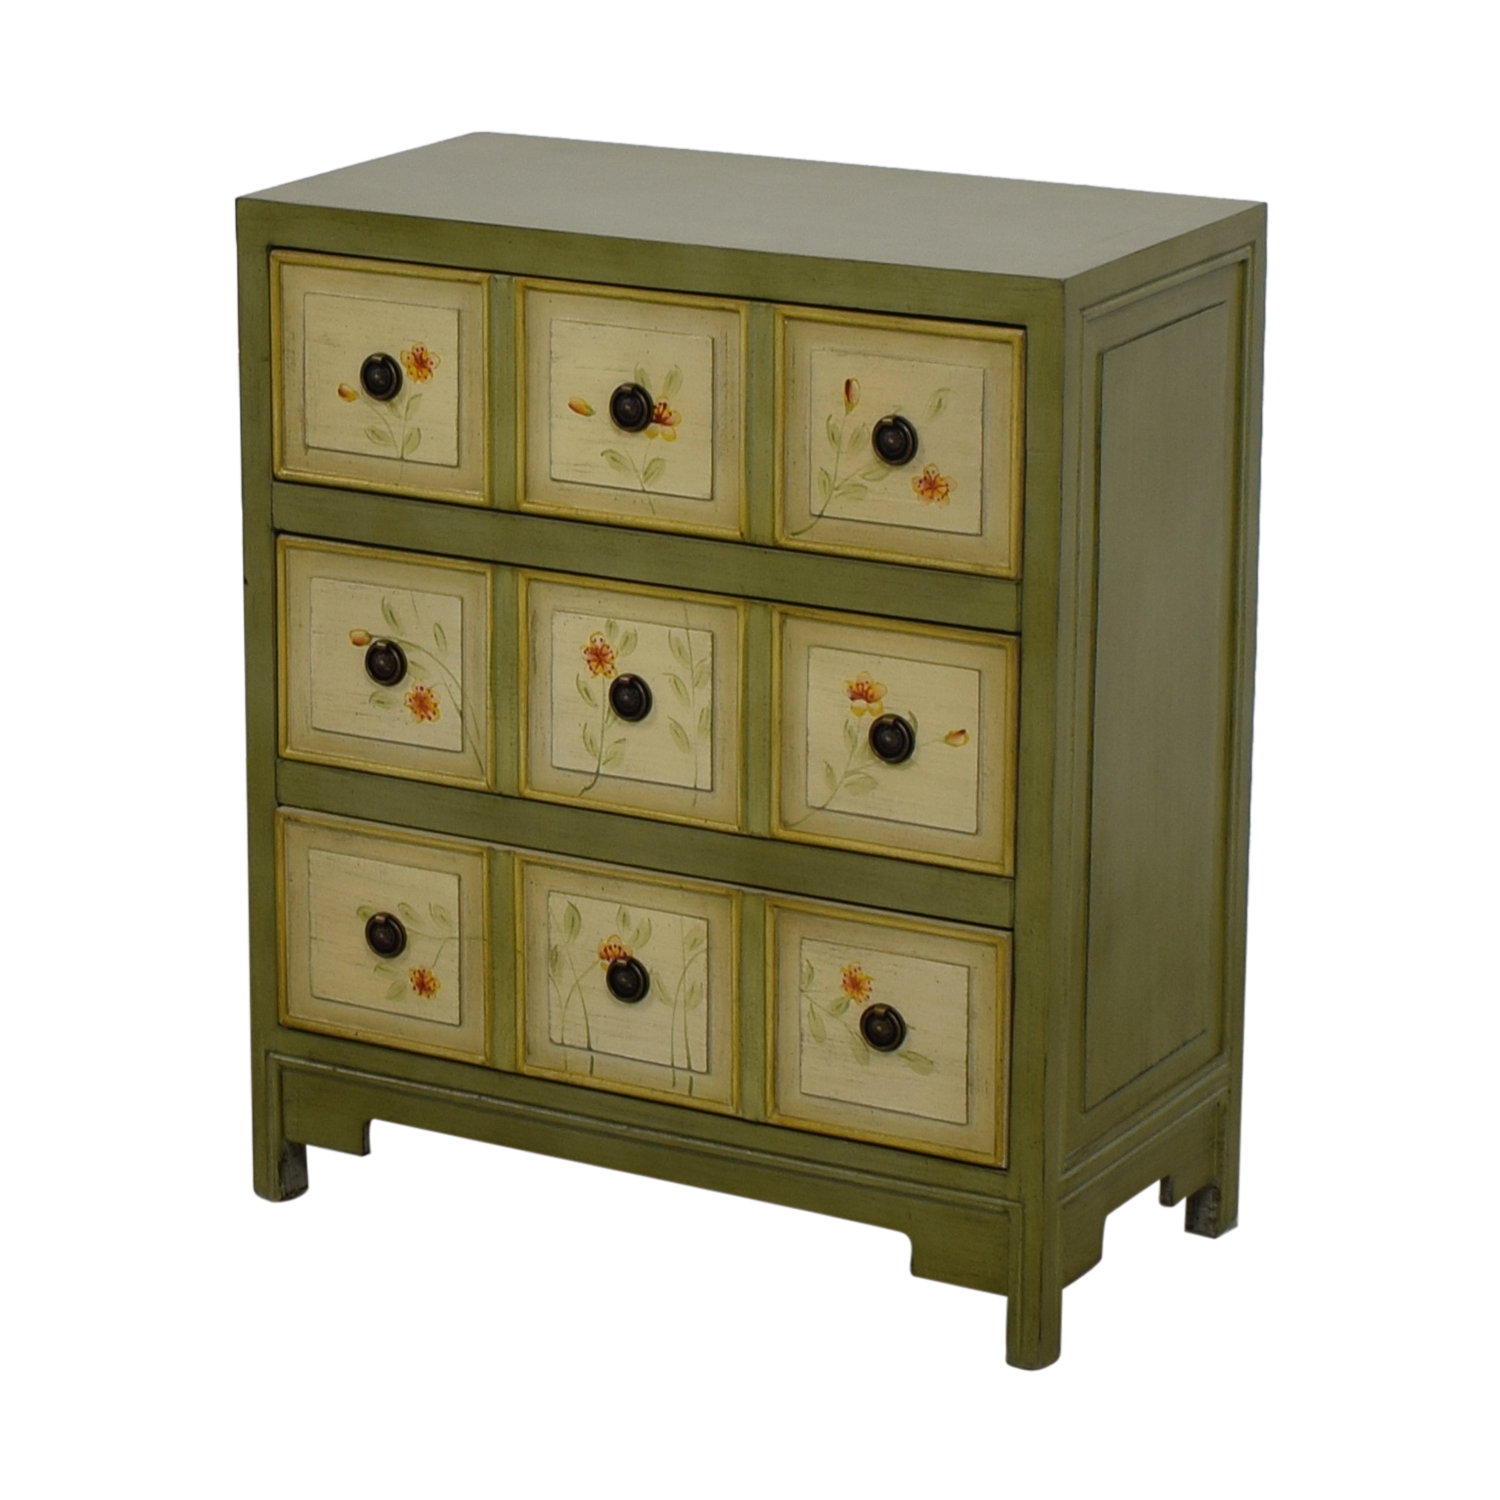 Raymour And Flanigan Kitchen Sets: Raymour & Flanigan Raymour & Flanigan Green